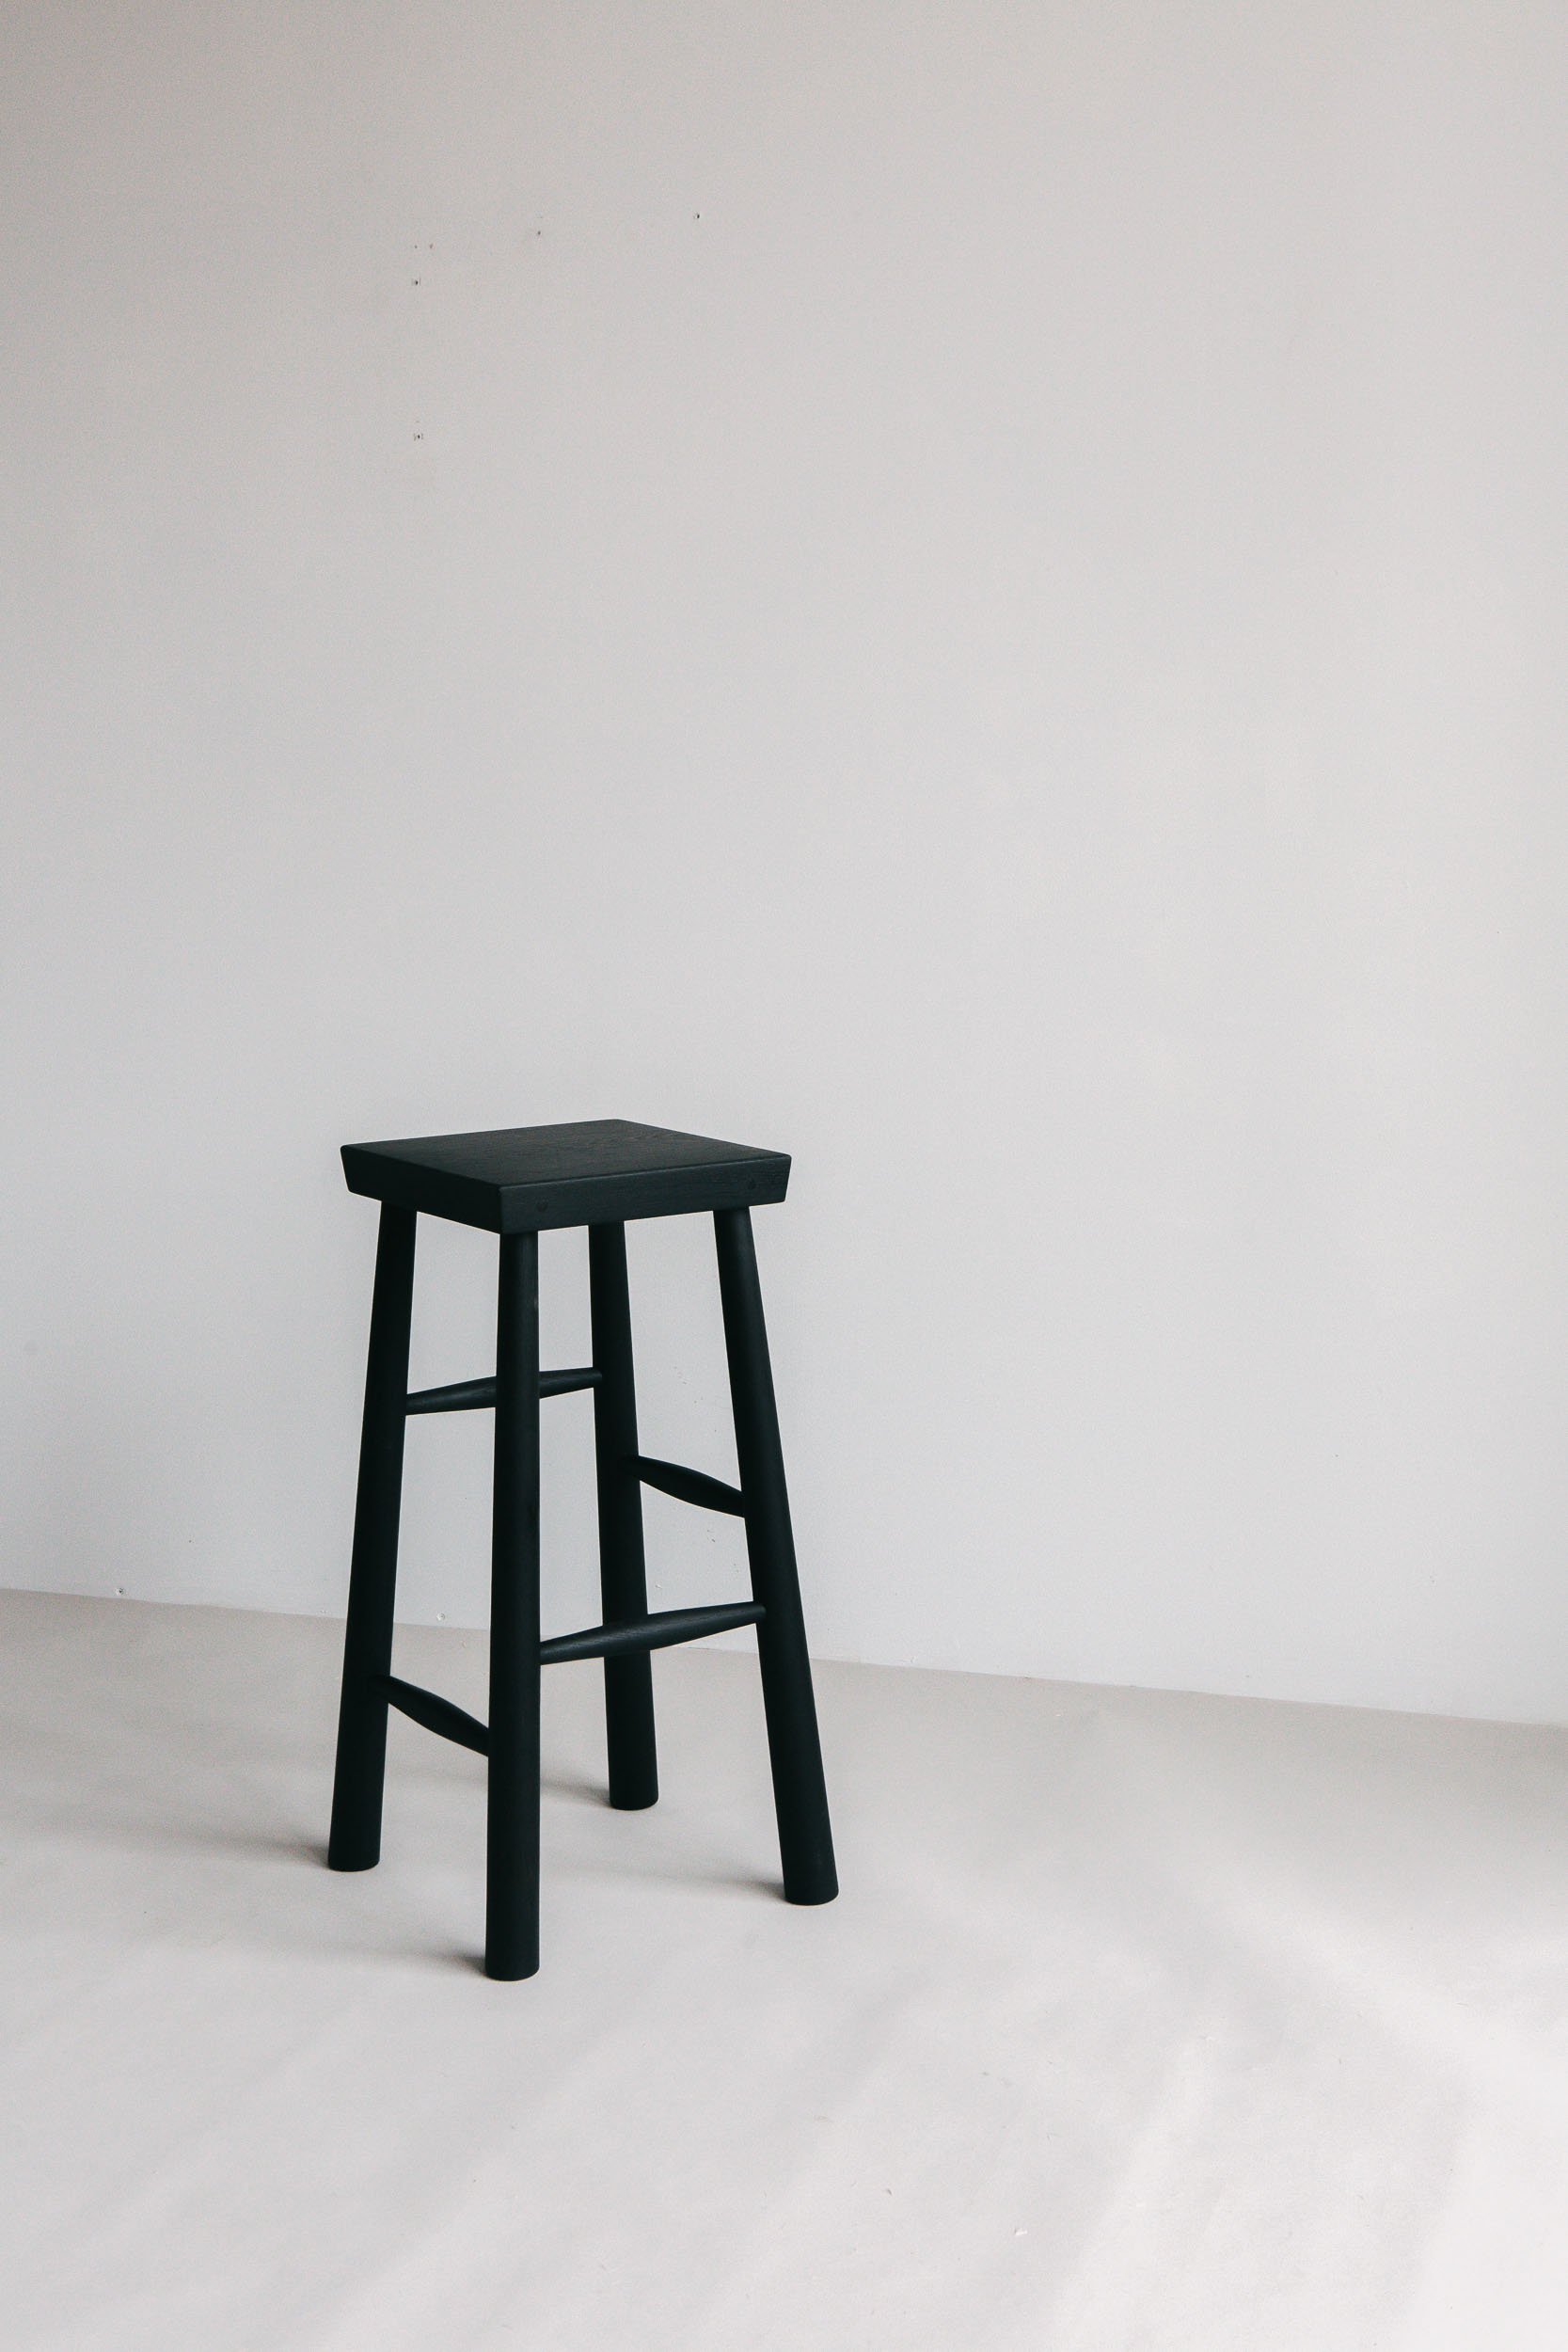 Graduated Rung Stool